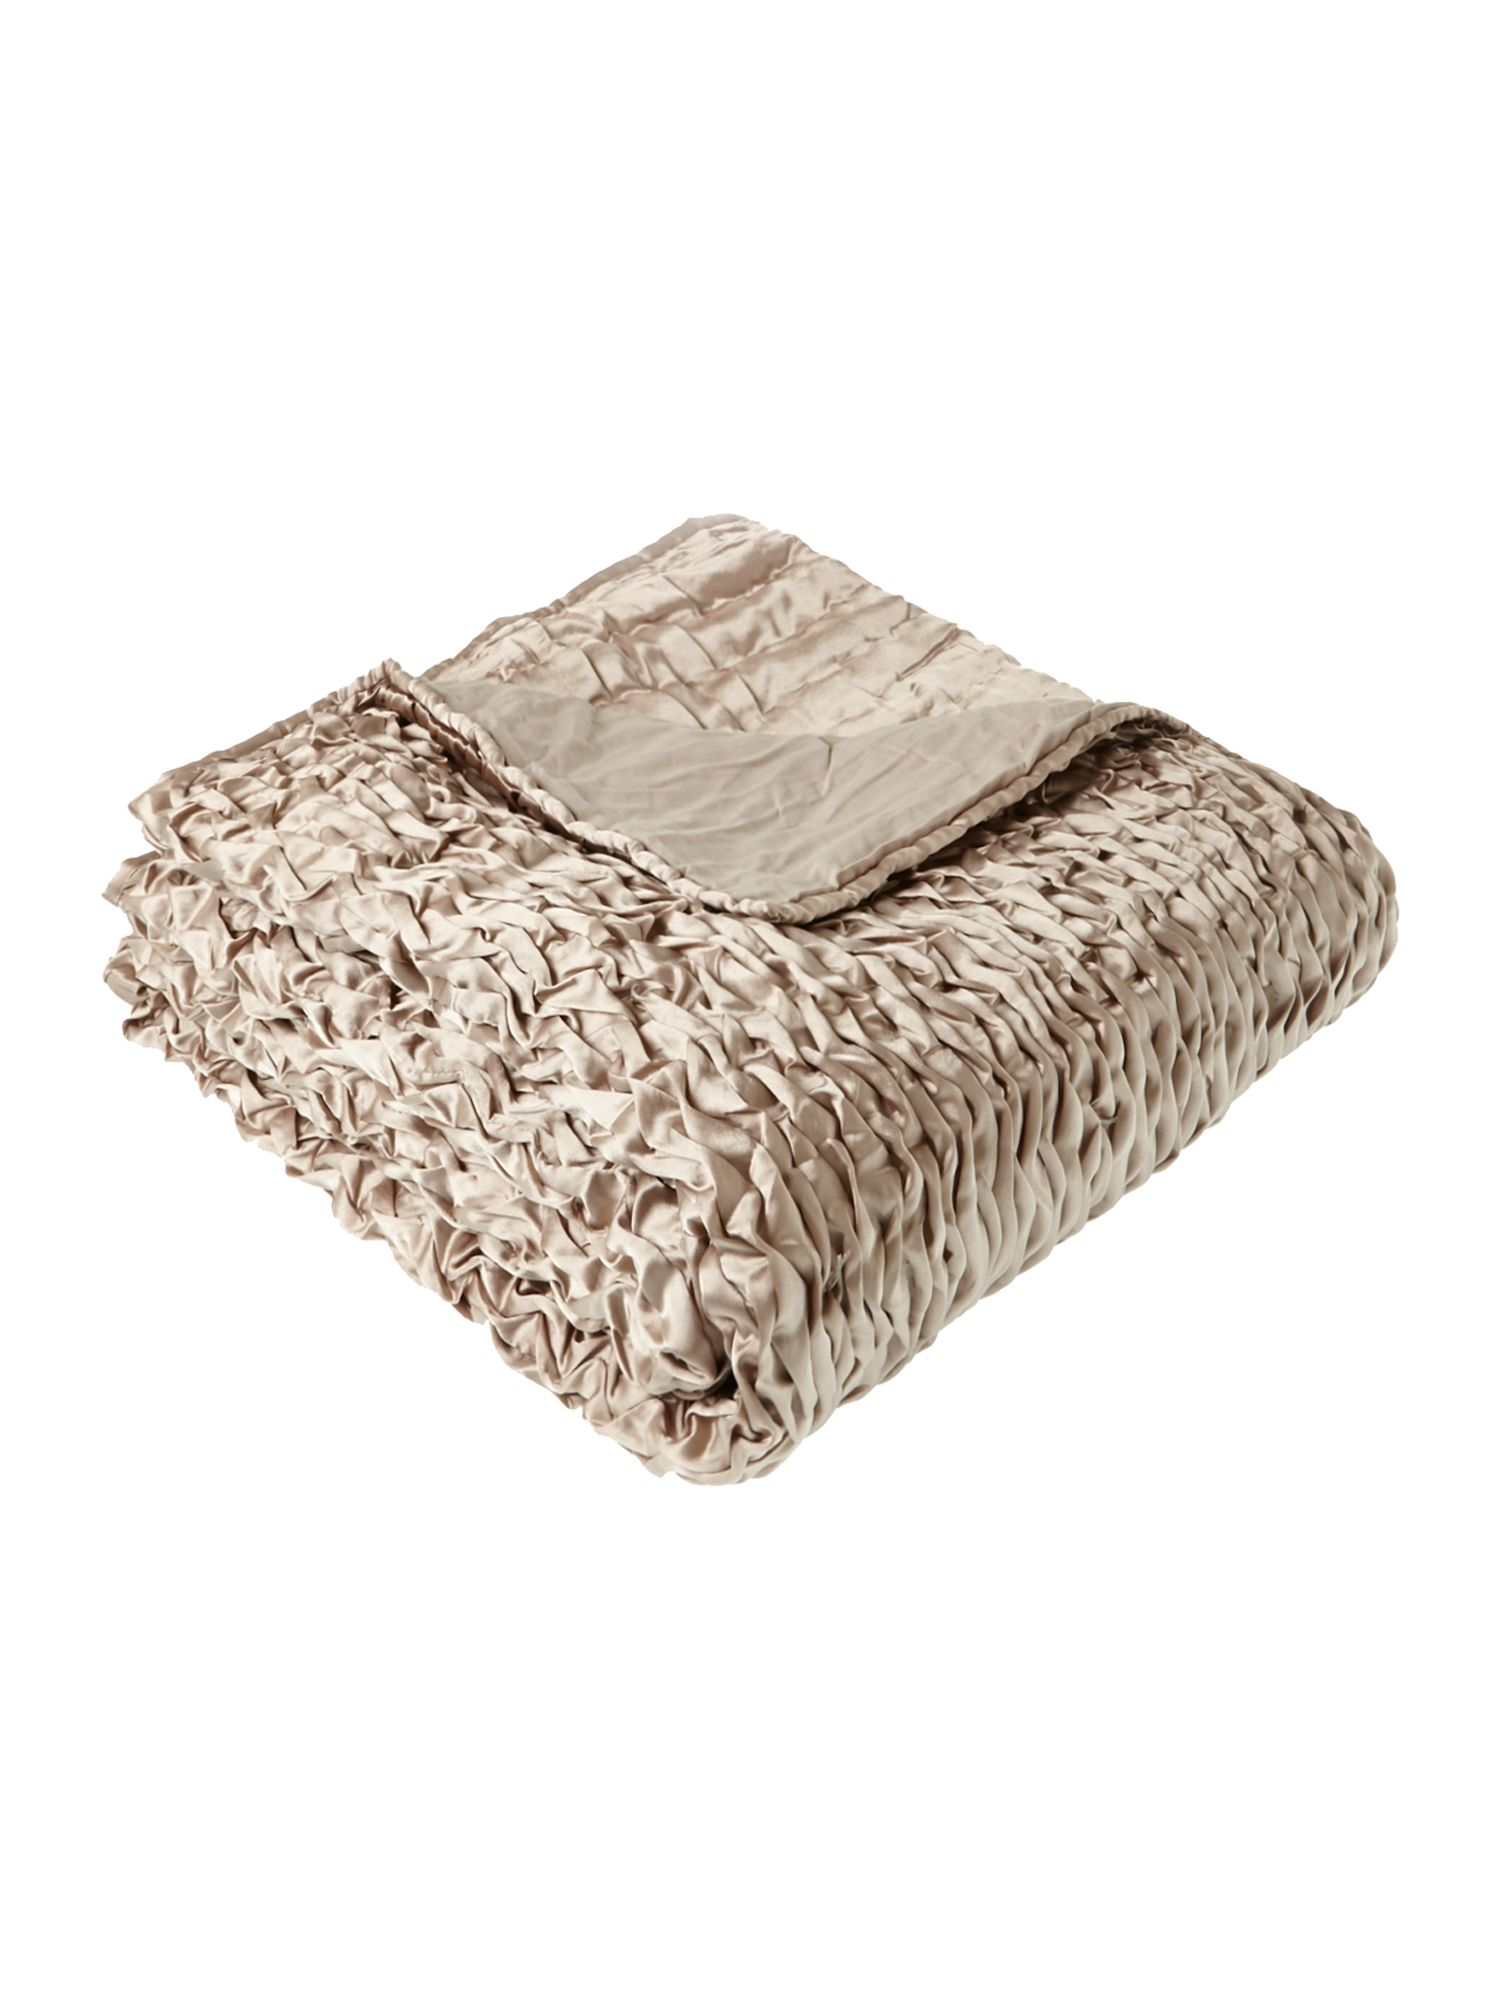 Hand stitched bedspread dove grey